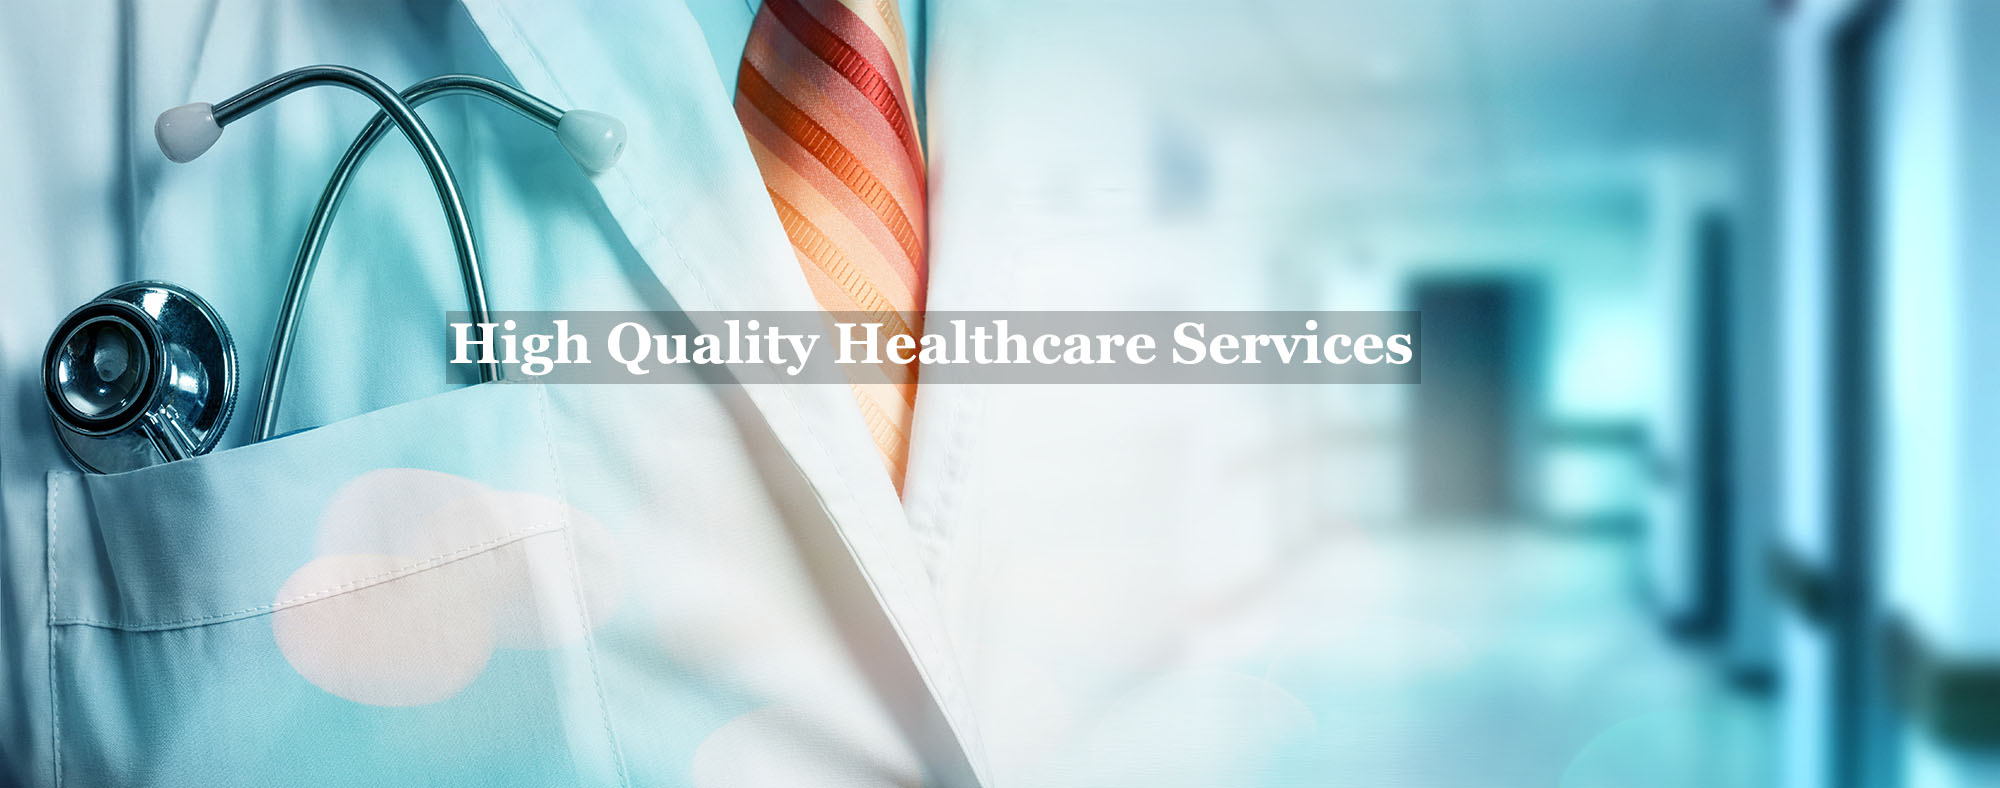 High Quality Healthcare Services